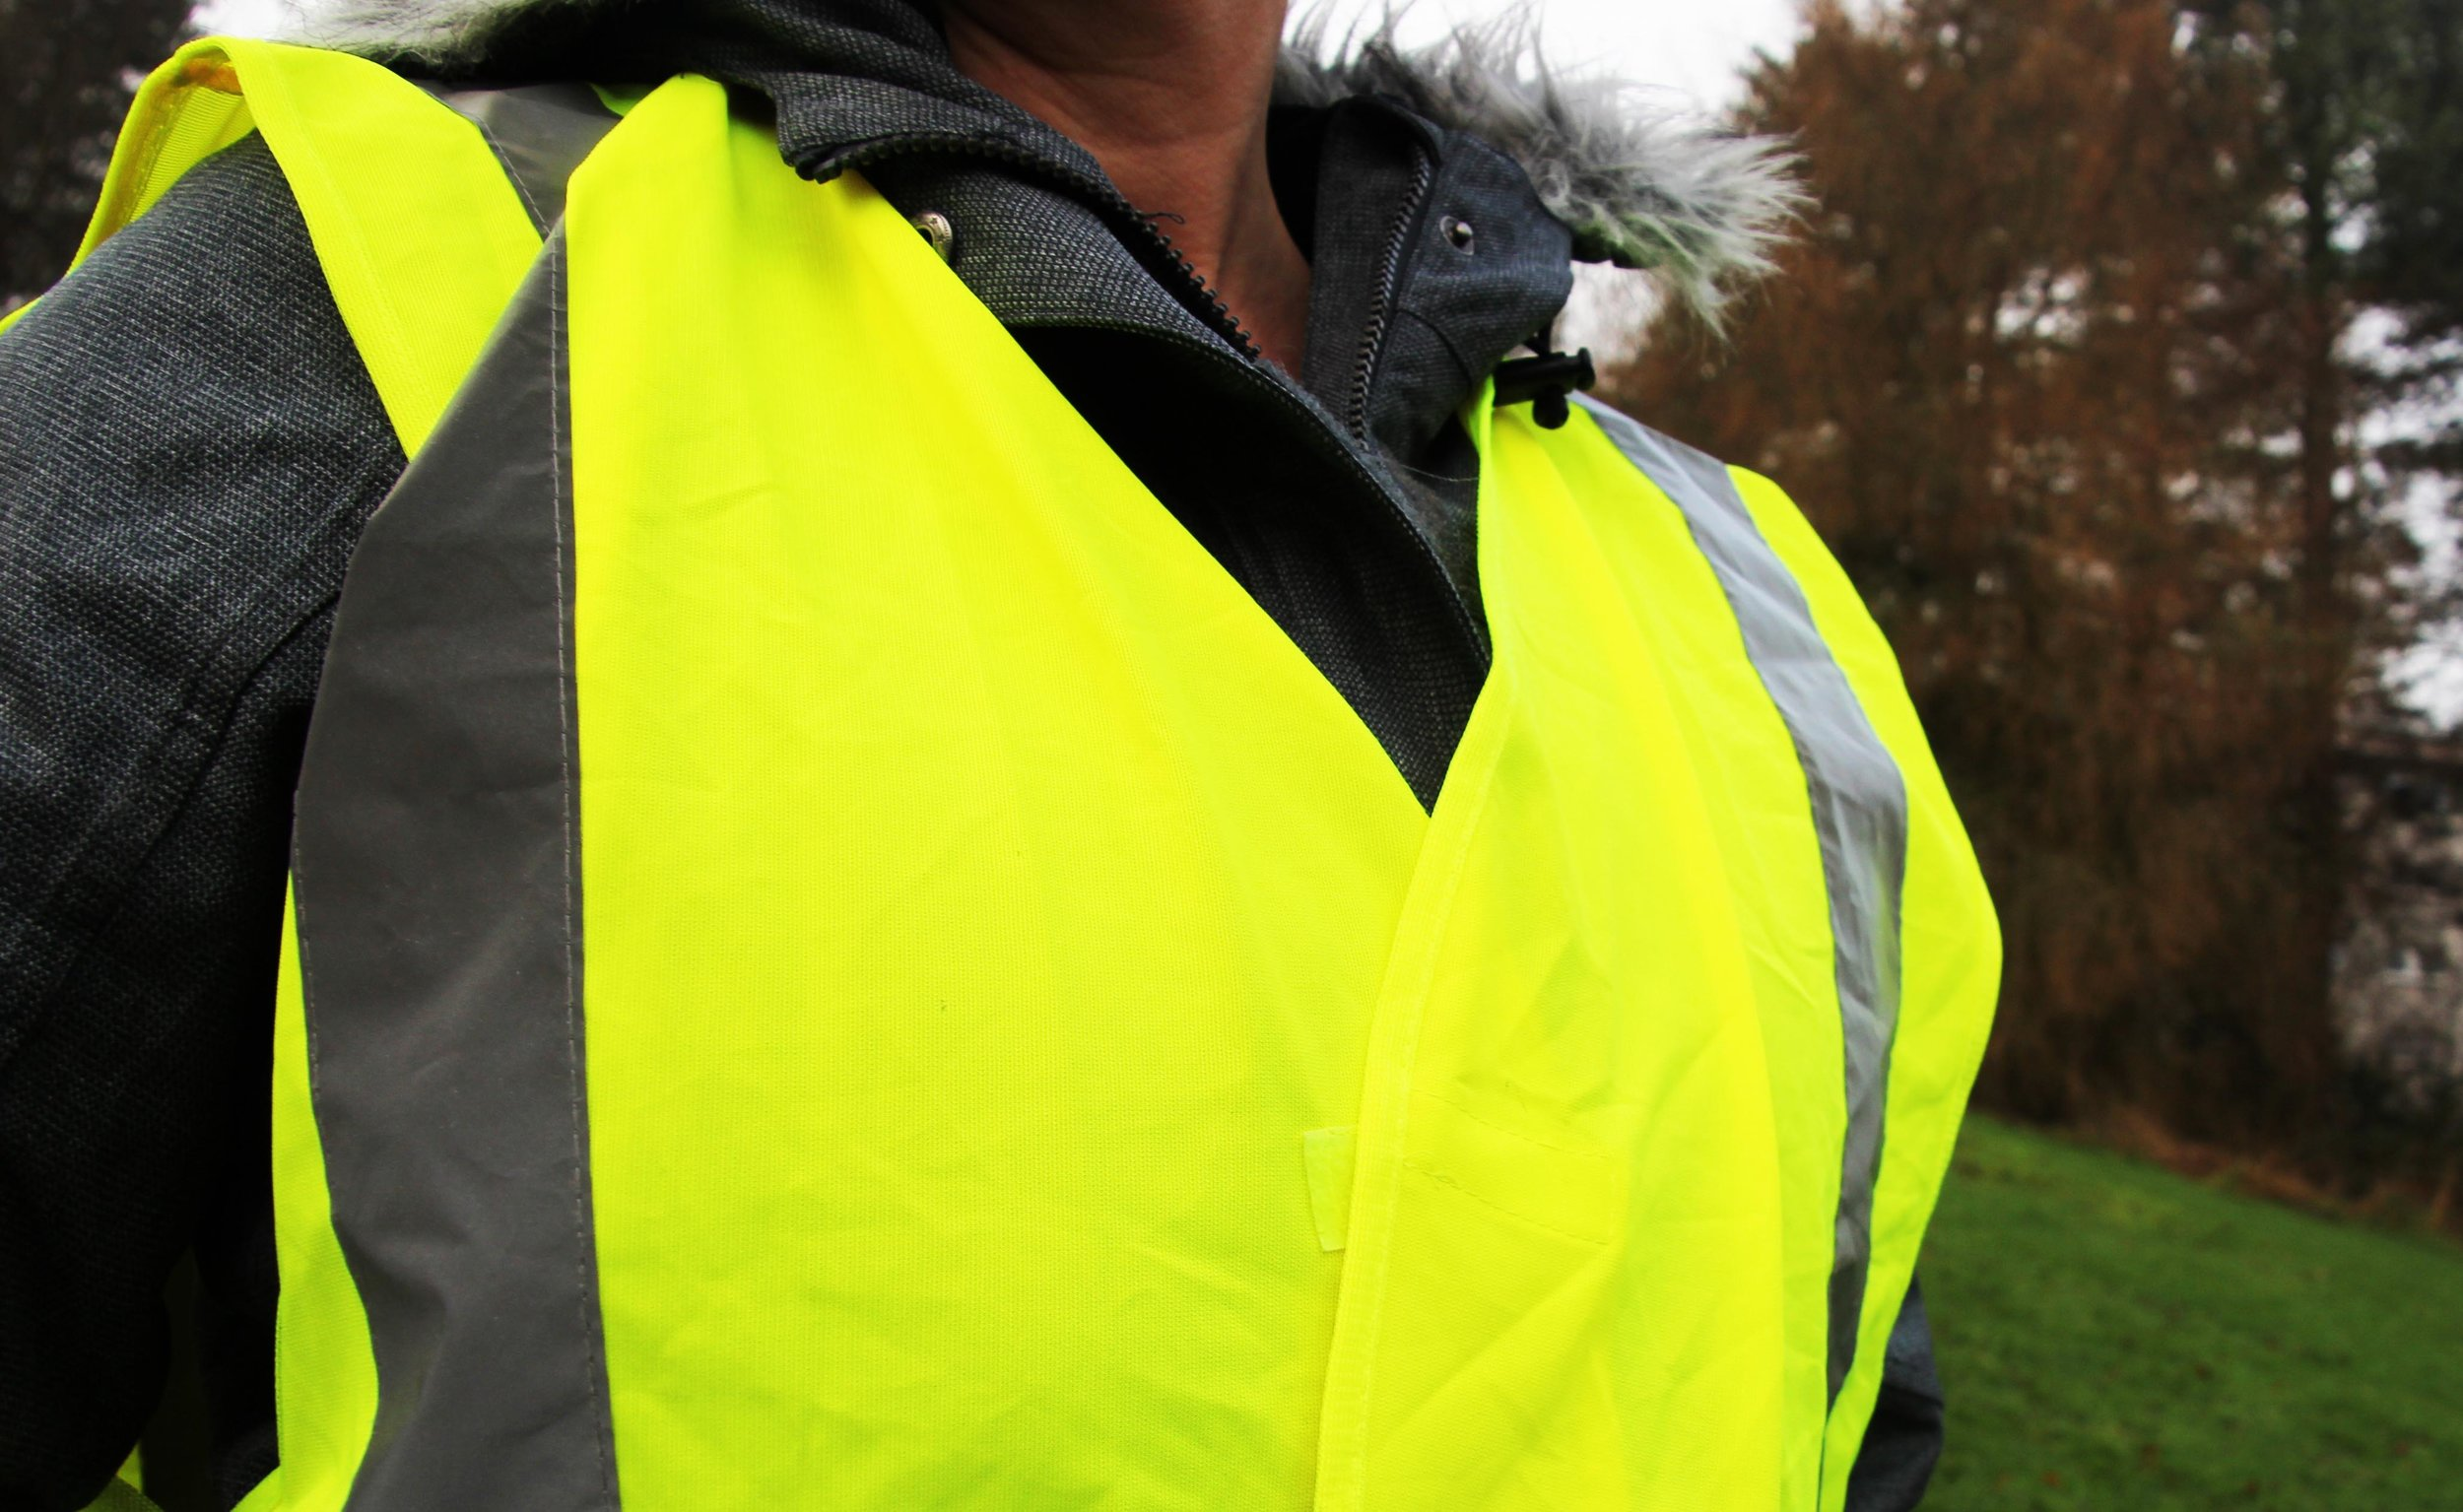 5. Keep a high-viz vest in the car -